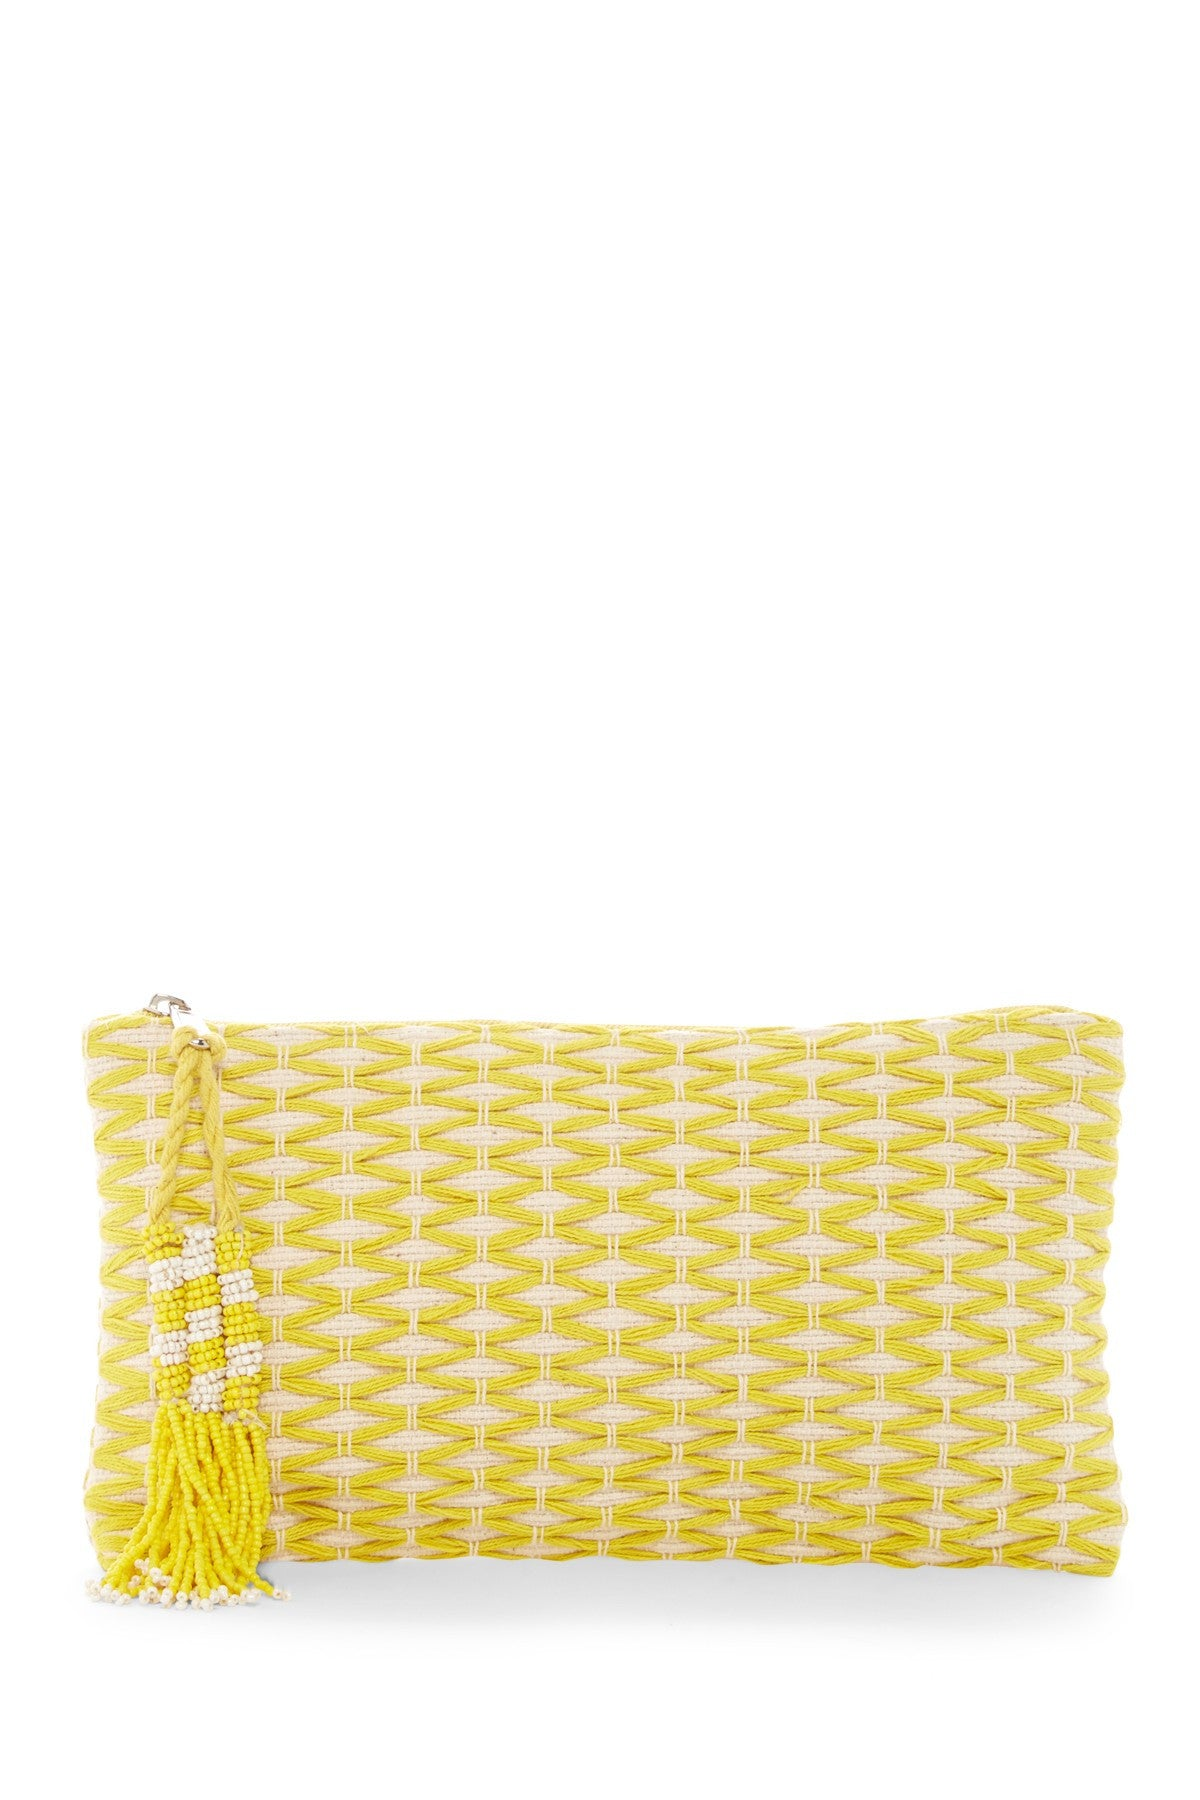 Nora Cotton Woven Clutch - Tulle and Twig